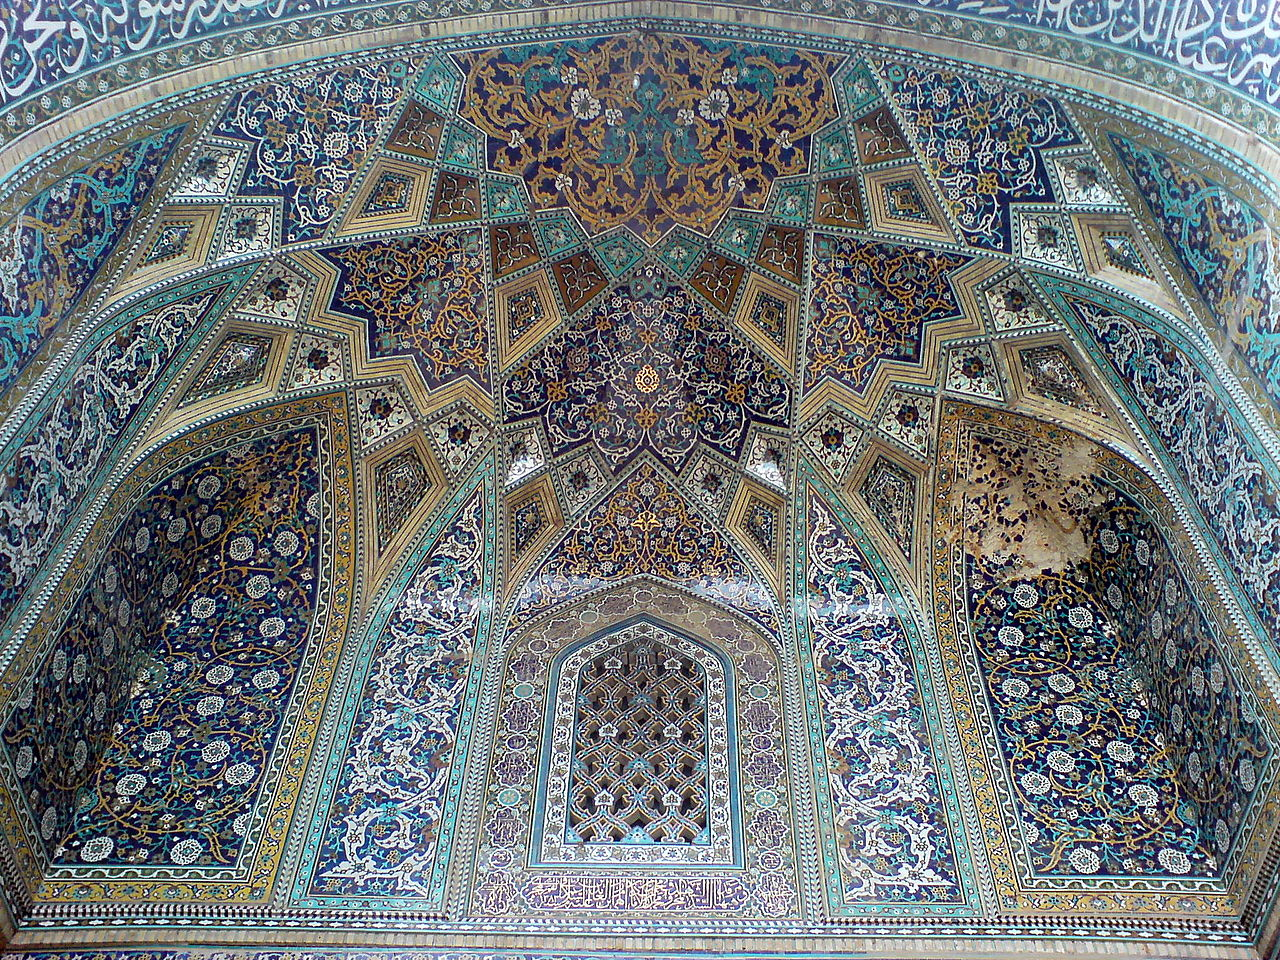 Middle_portico_of_Al-Mahruq_Mosque_-_Tiling_02.JPG